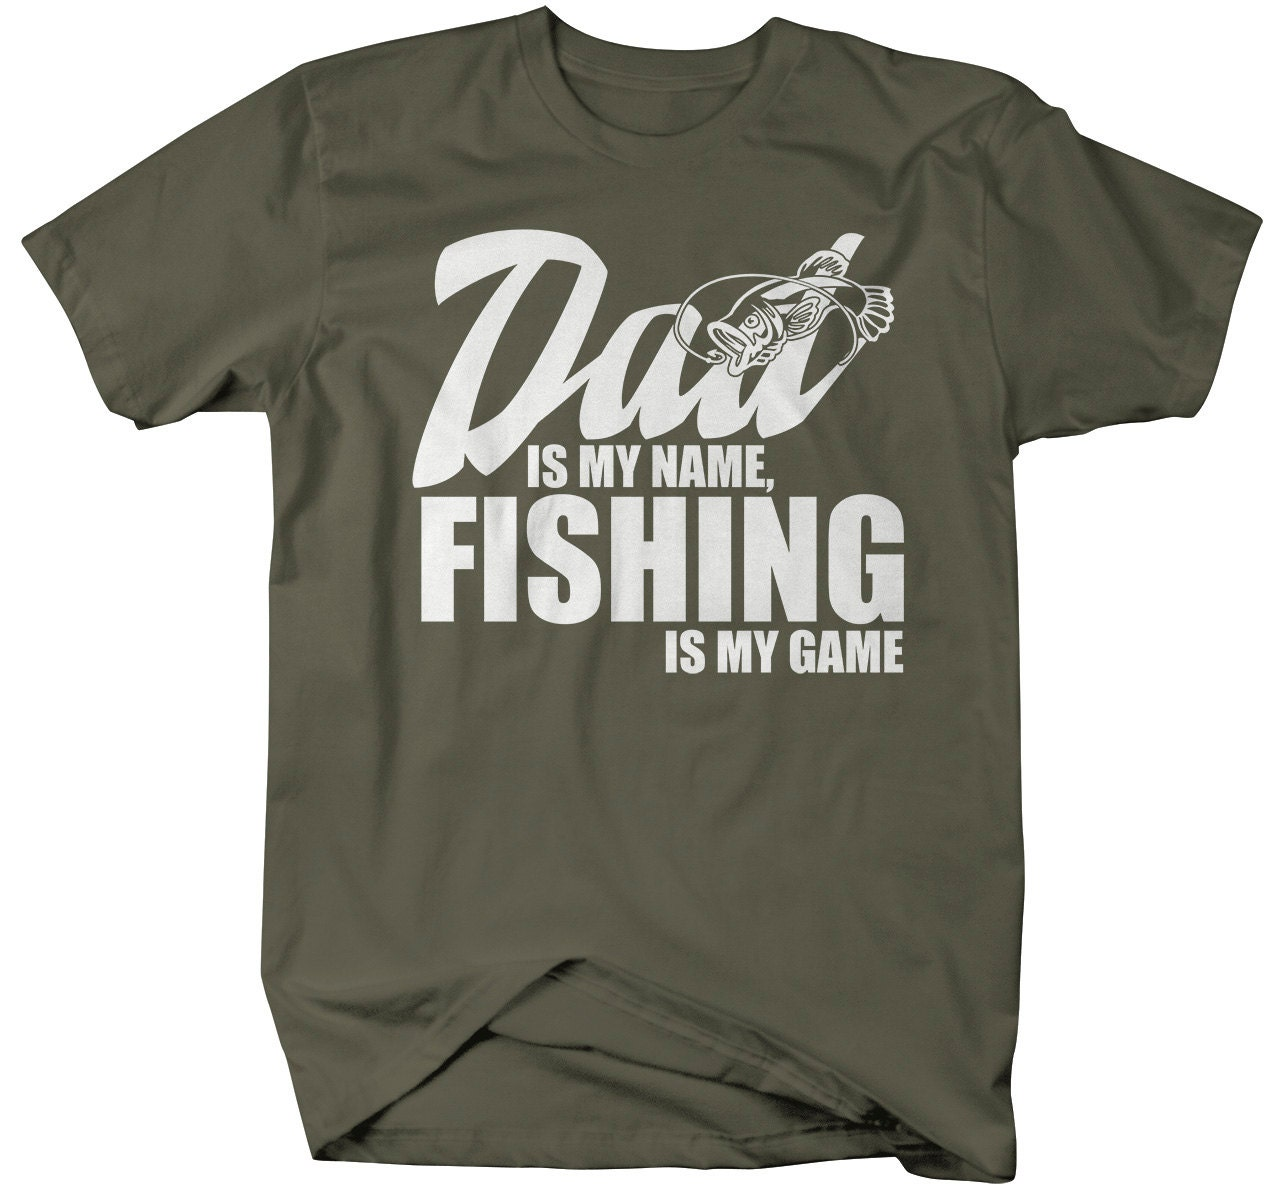 Men 39 s funny fishing t shirt dad is my name by shirtsbysarah for Funny fishing t shirts